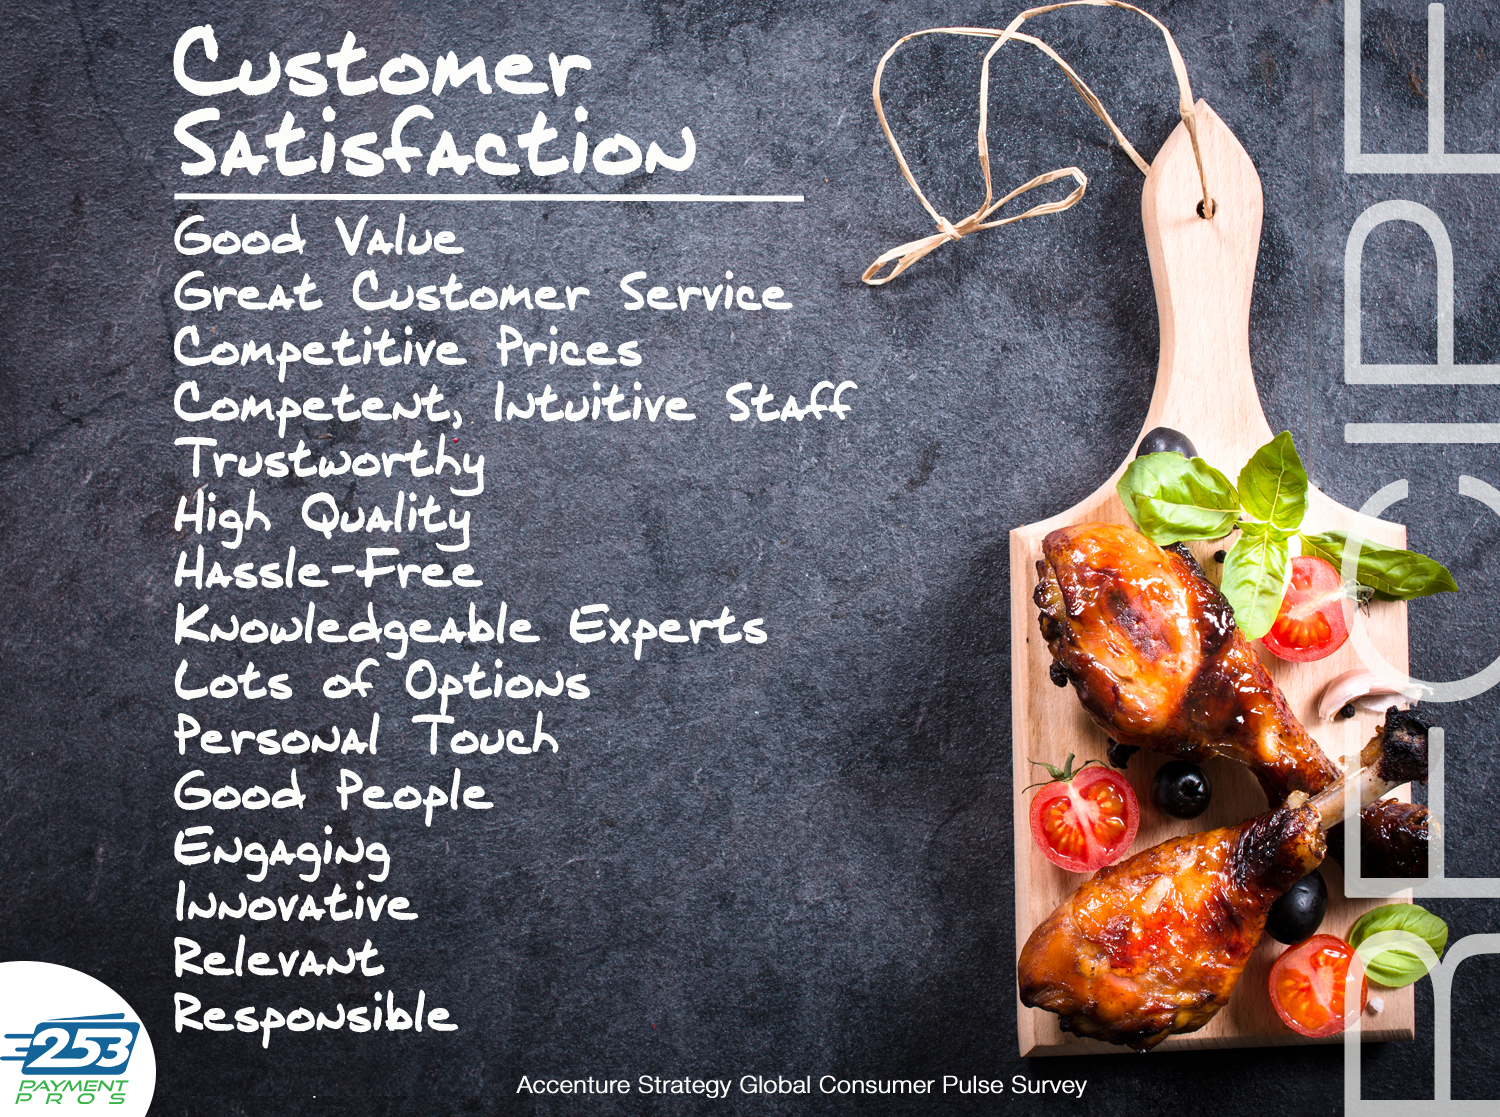 Customer Satisfaction Survey with a Recipe for Making Customers Happy